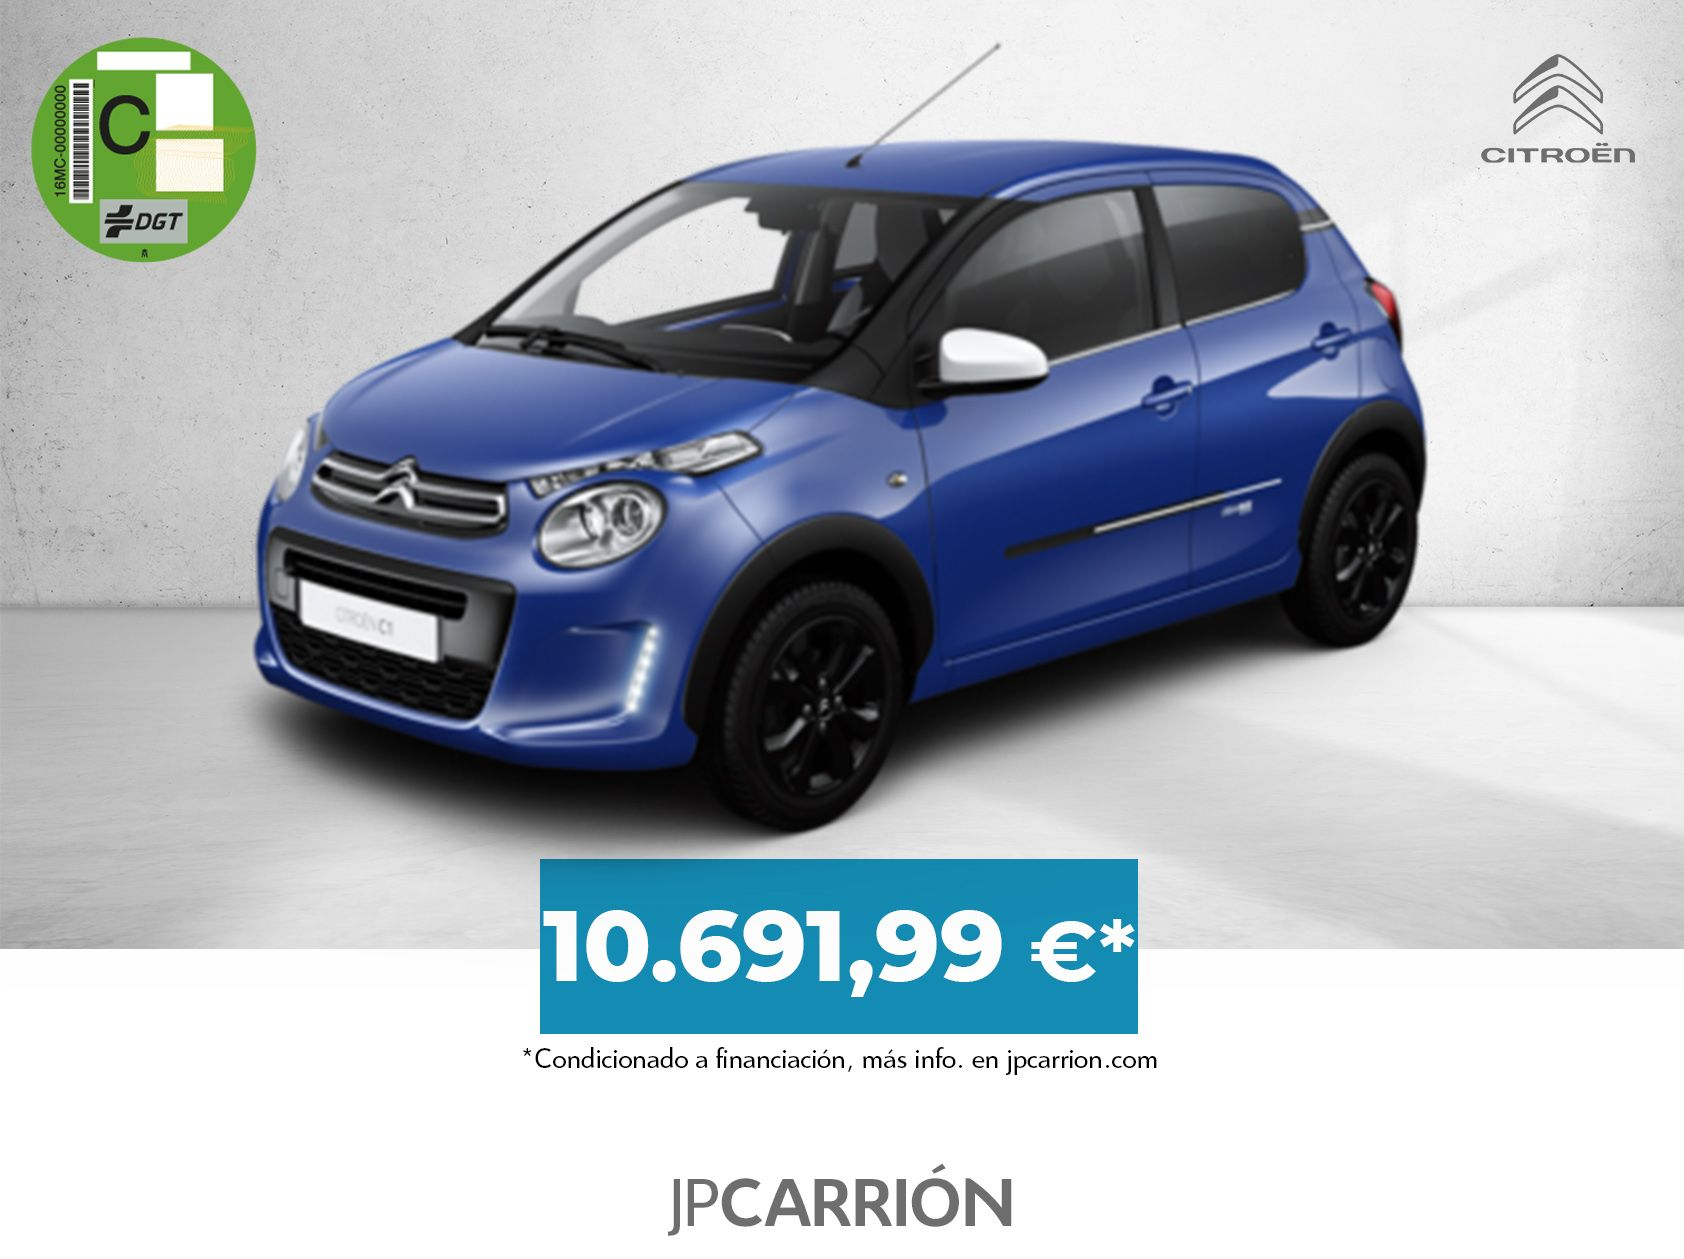 Citroën C1 Urban Ride por 10.691,99 €*